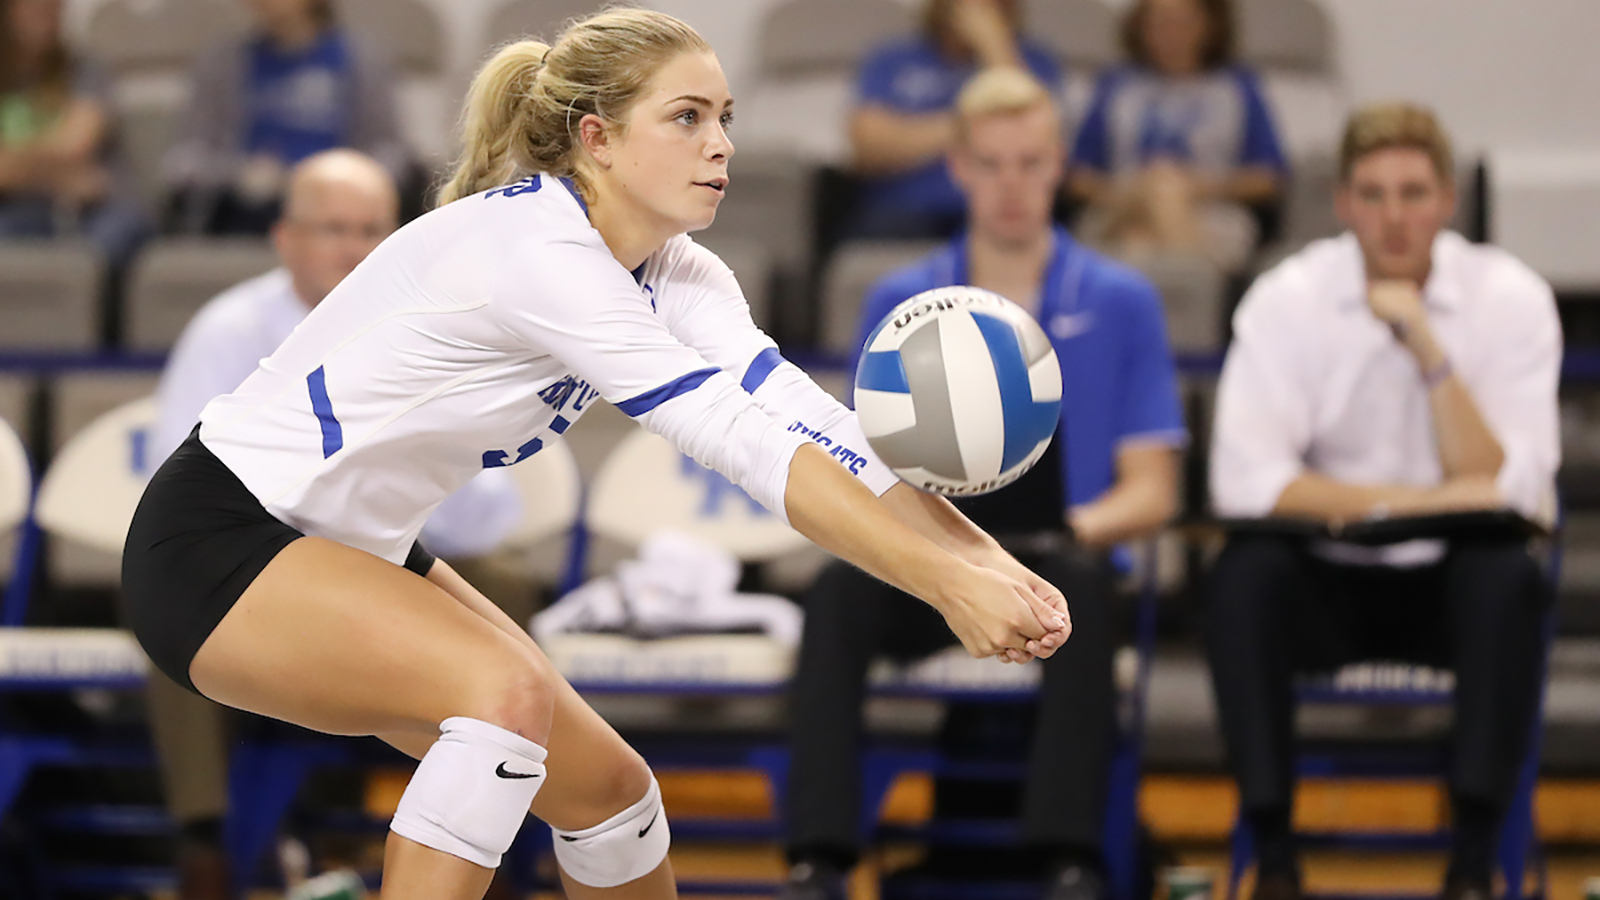 Lauren Tharp Volleyball University Of Kentucky Athletics